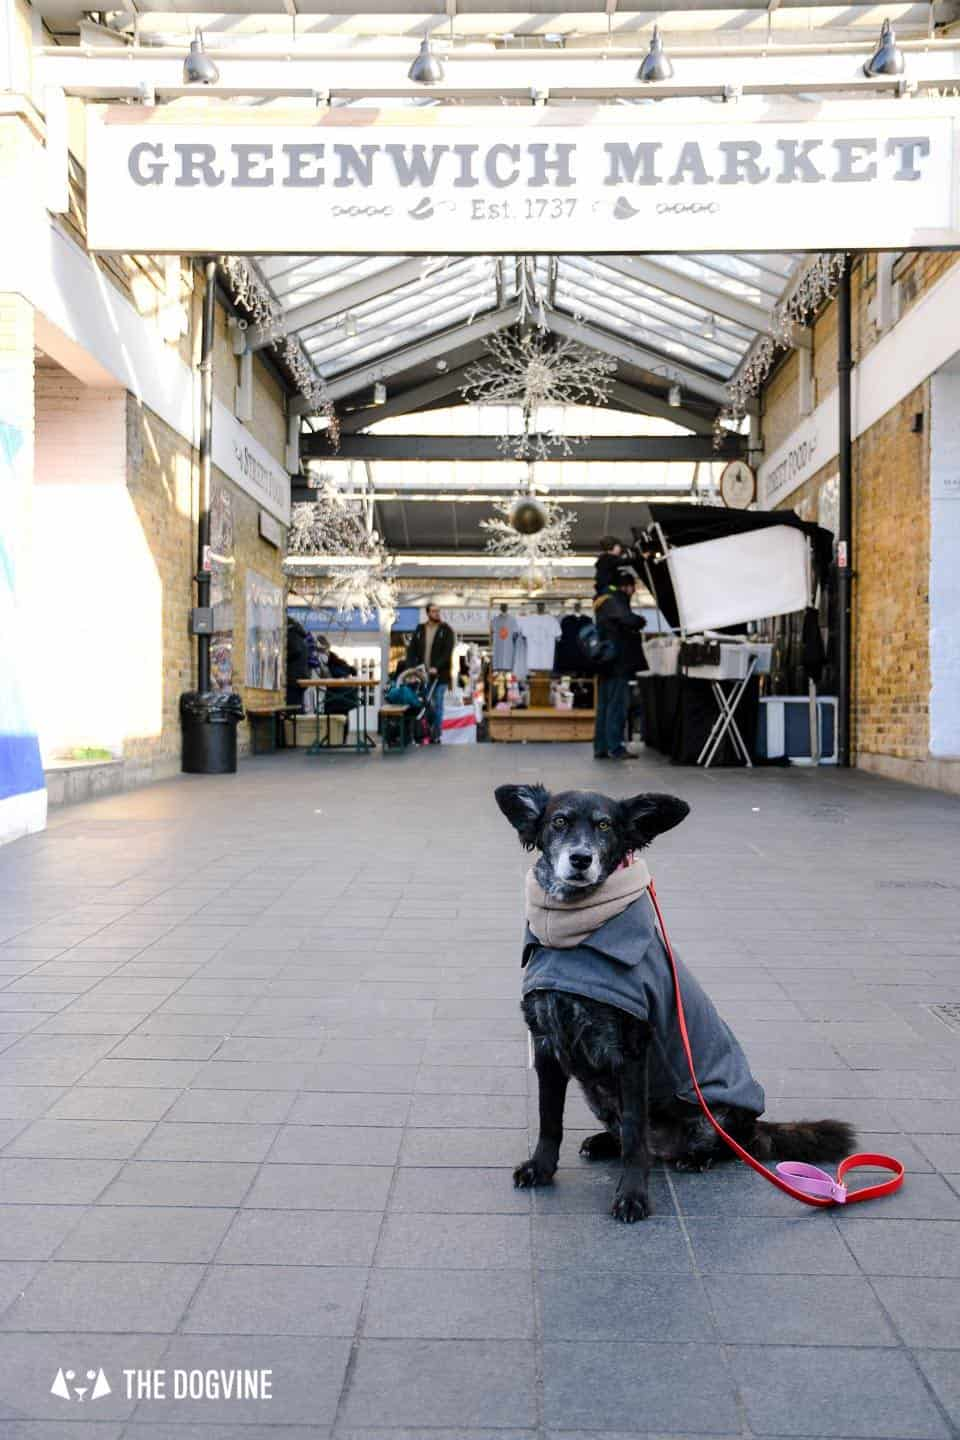 Best Dog-friendly Street Food Markets and Halls in London - Greenwich Market